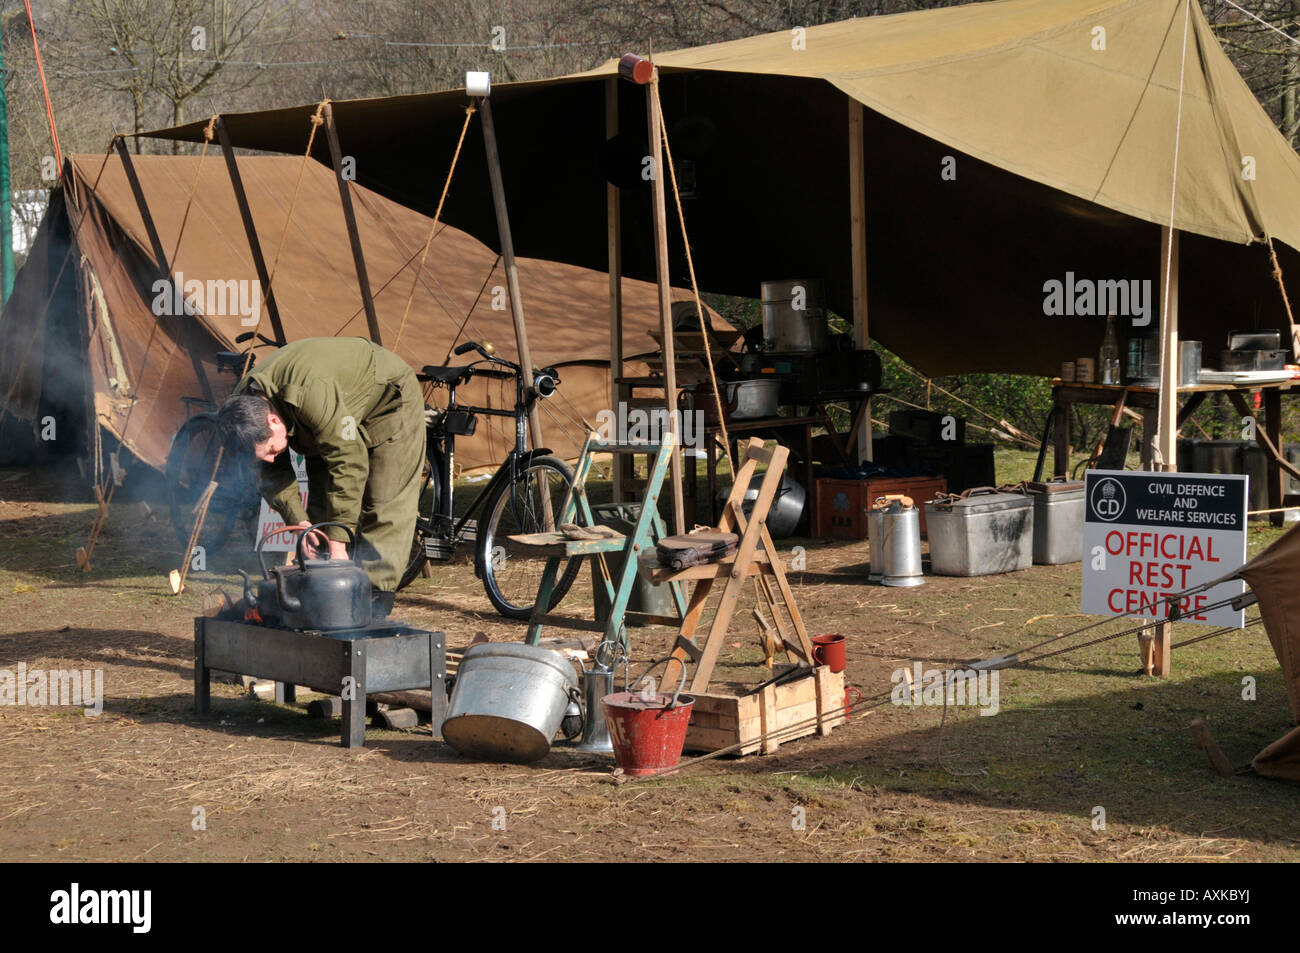 person in uniform cooking over stove  weekend Peak District Derbyshire England UK - Stock Image